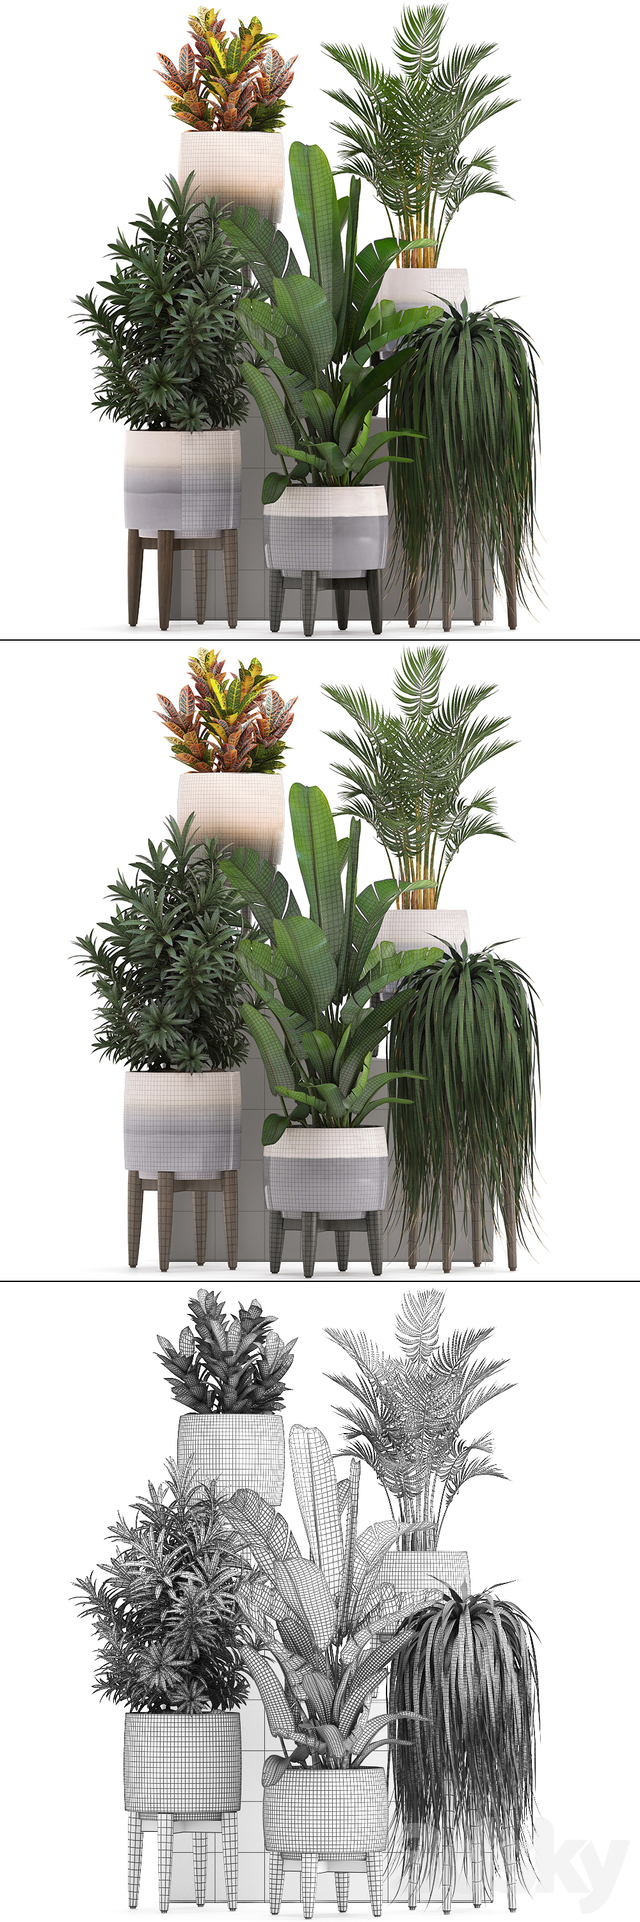 Plant collection 278.